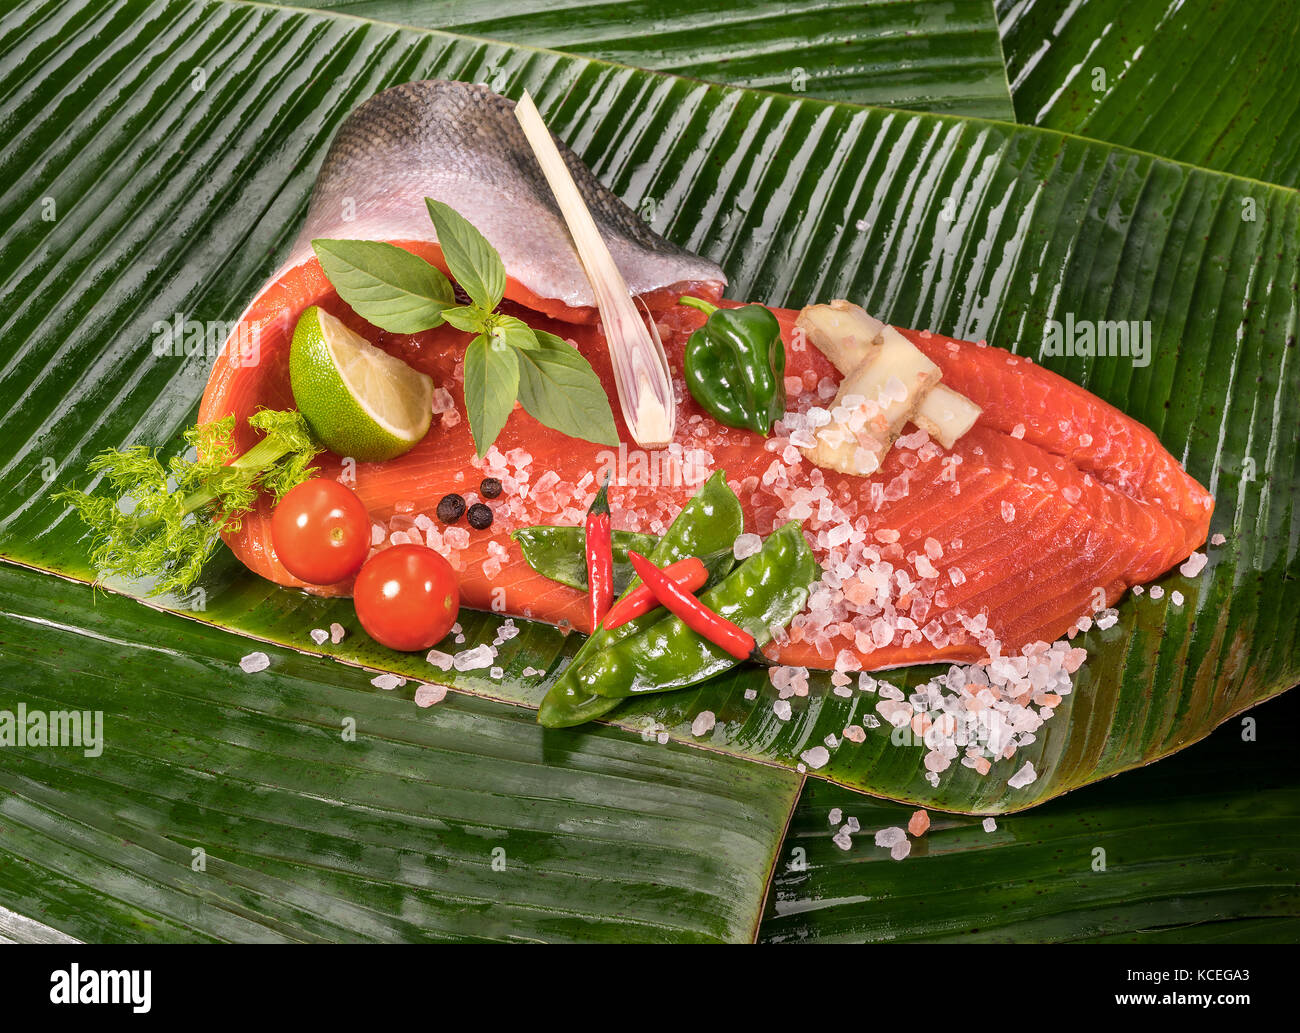 fresh sockeye wild salmon and ingredients for steaming in the banana leaf - Stock Image